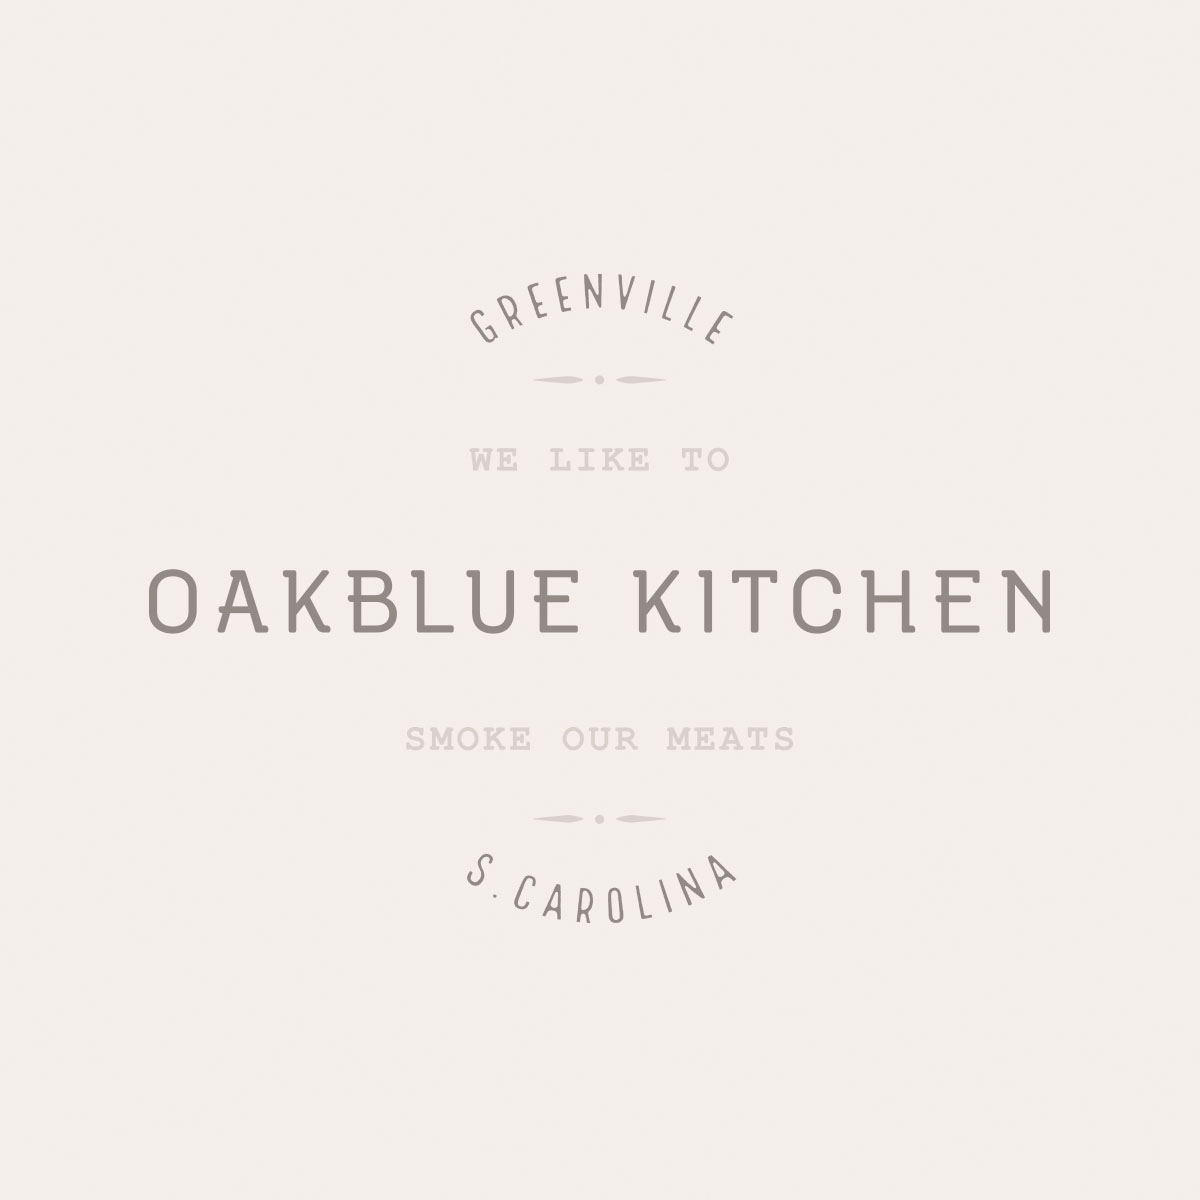 """Wordmark of Oakblue Kitchen set in custom font and typeface for the restaurant, in logo stamped lockup with core message, """"Greenville S. Carolina, we like to smoke our meats."""""""